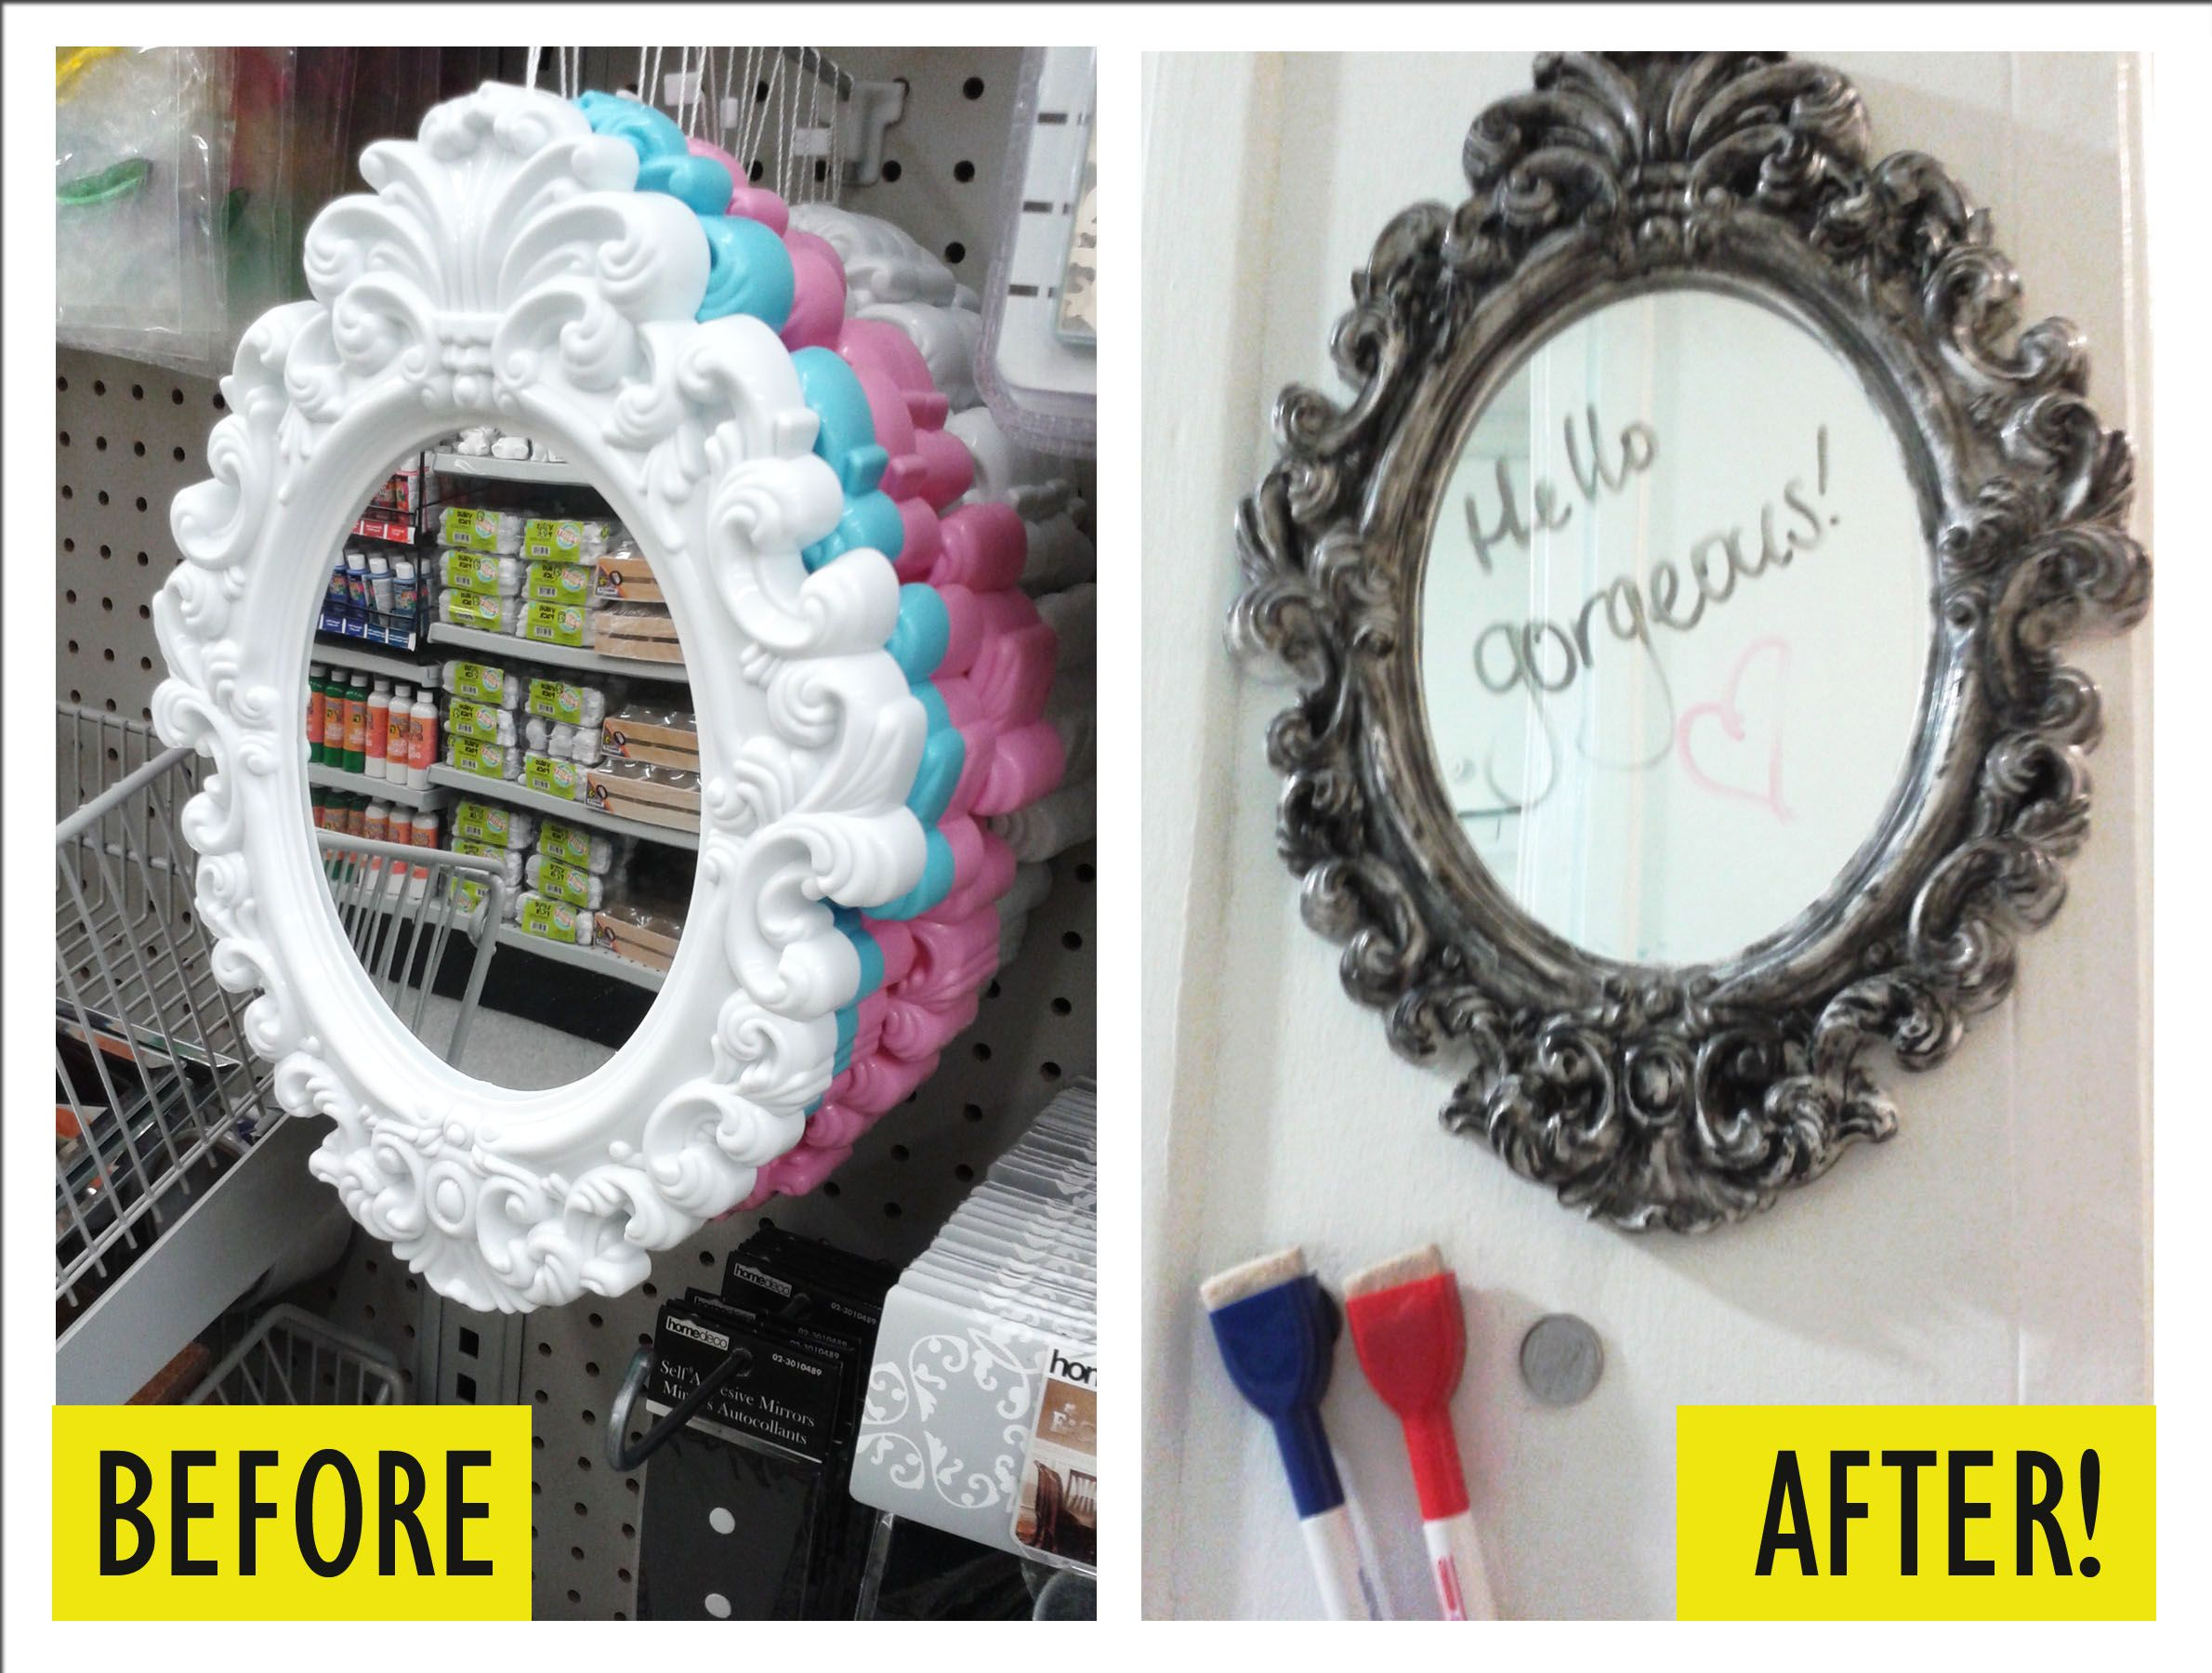 2$ plastic mirror + acrylic paint + Nickels taped to the wall + magnetic dry markers = Inexpensive & fancy dry-erase board for your entrance that you can check your makeup in :)